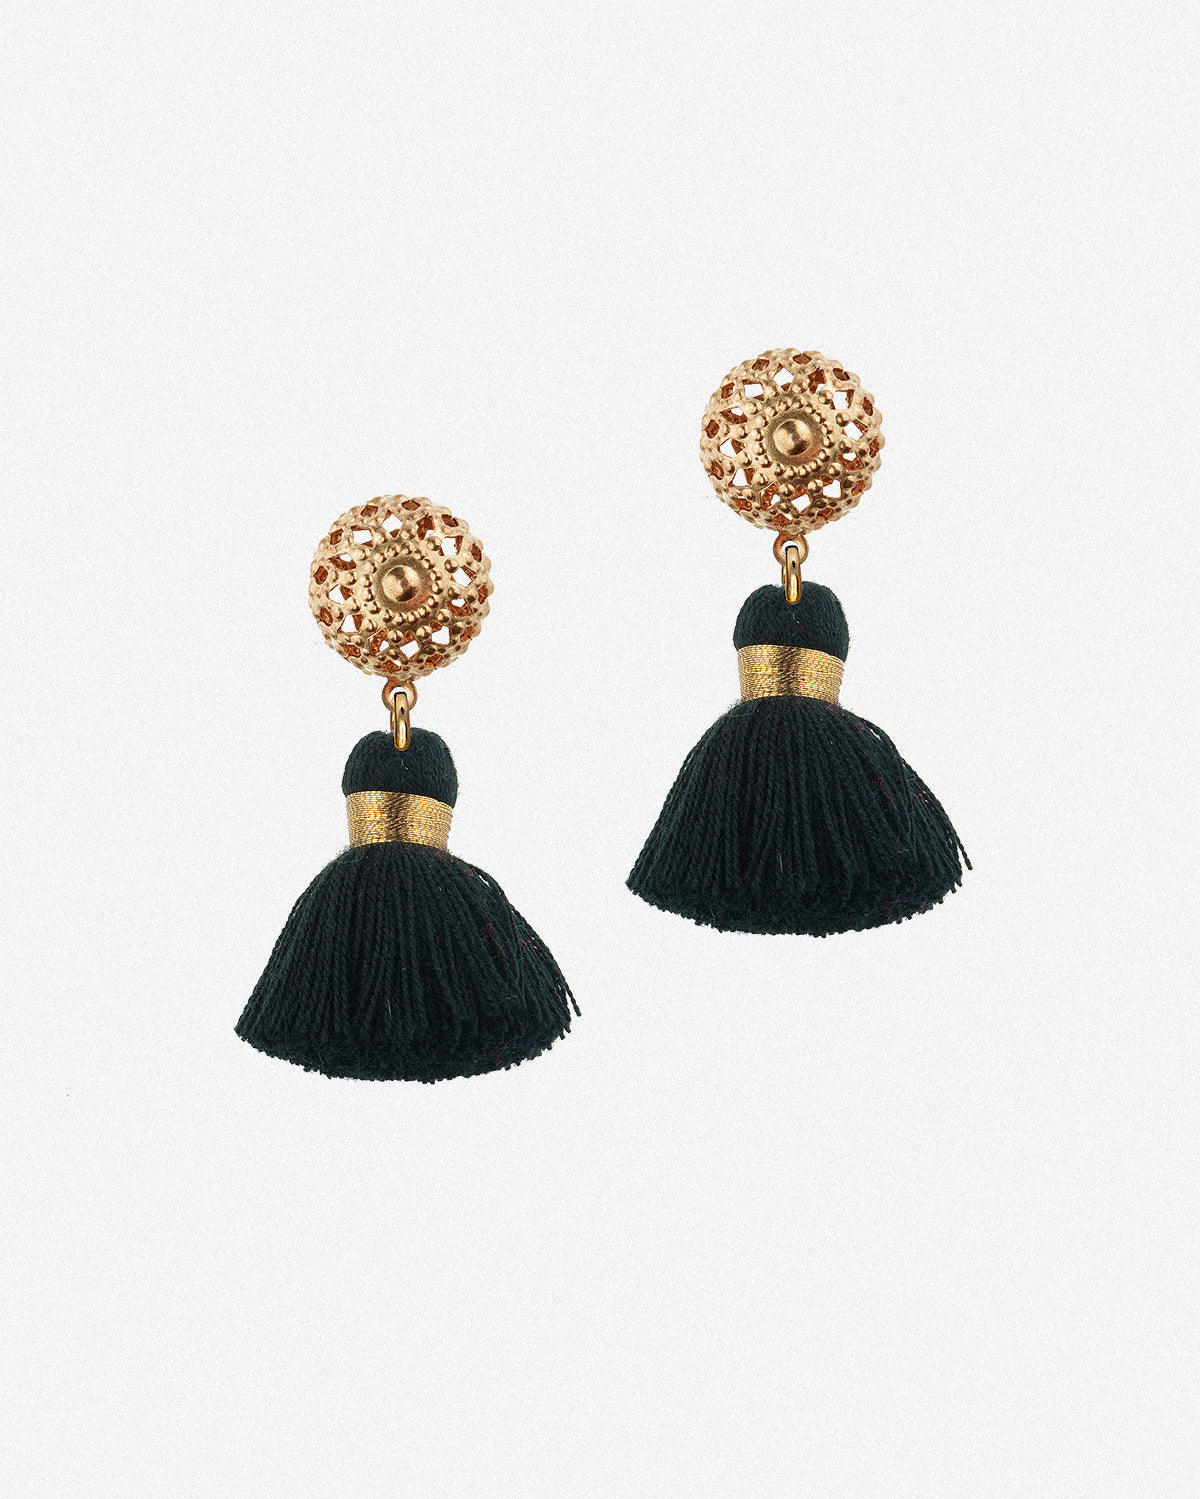 Image of Emmeline Mini Tassel Earrings - Black